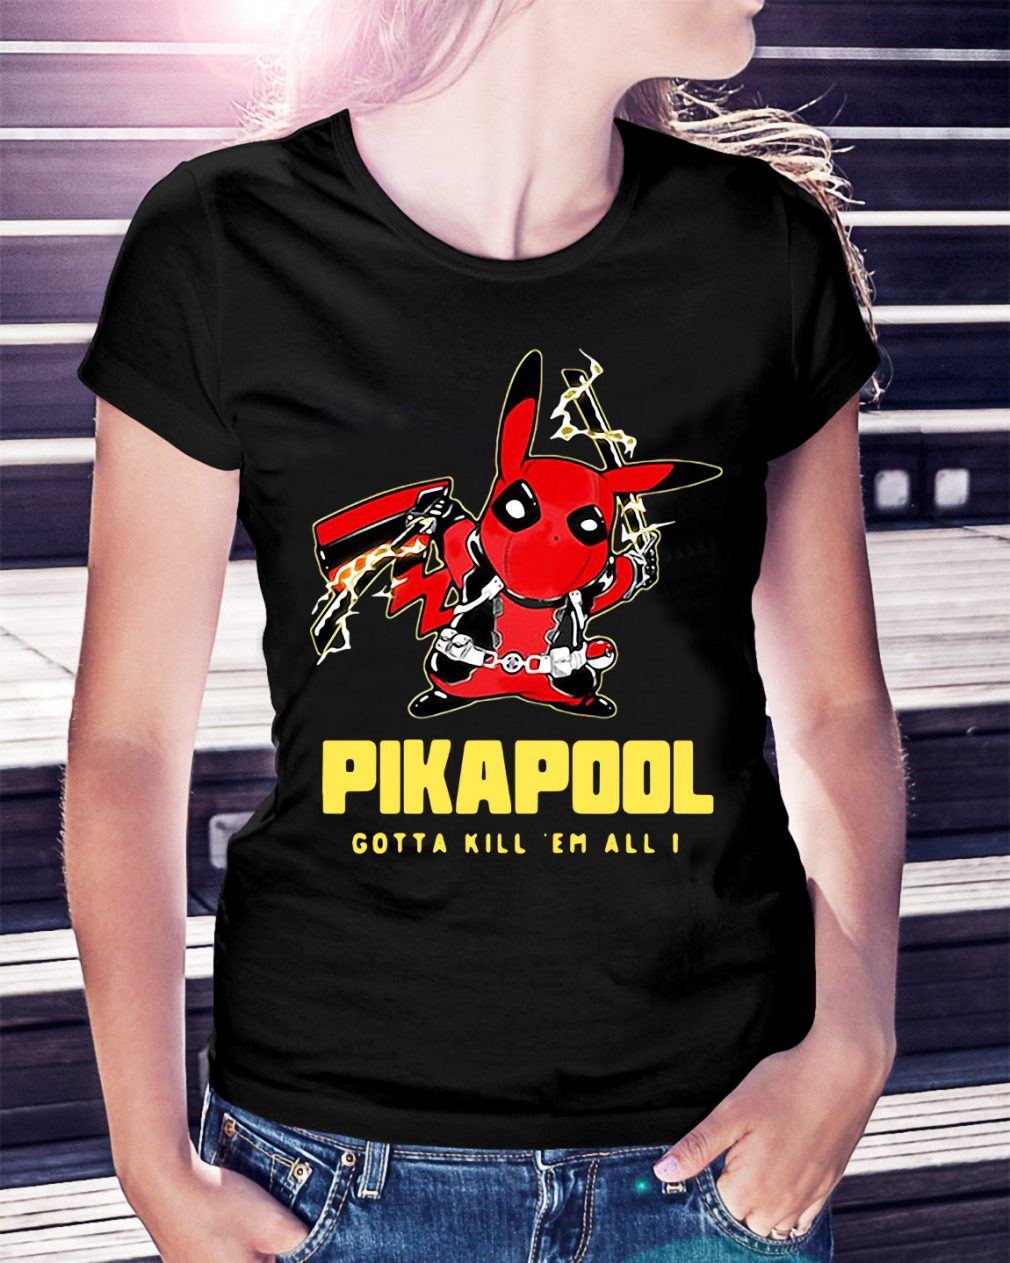 Pikapool gotta kill 'em all I Ladies Tee